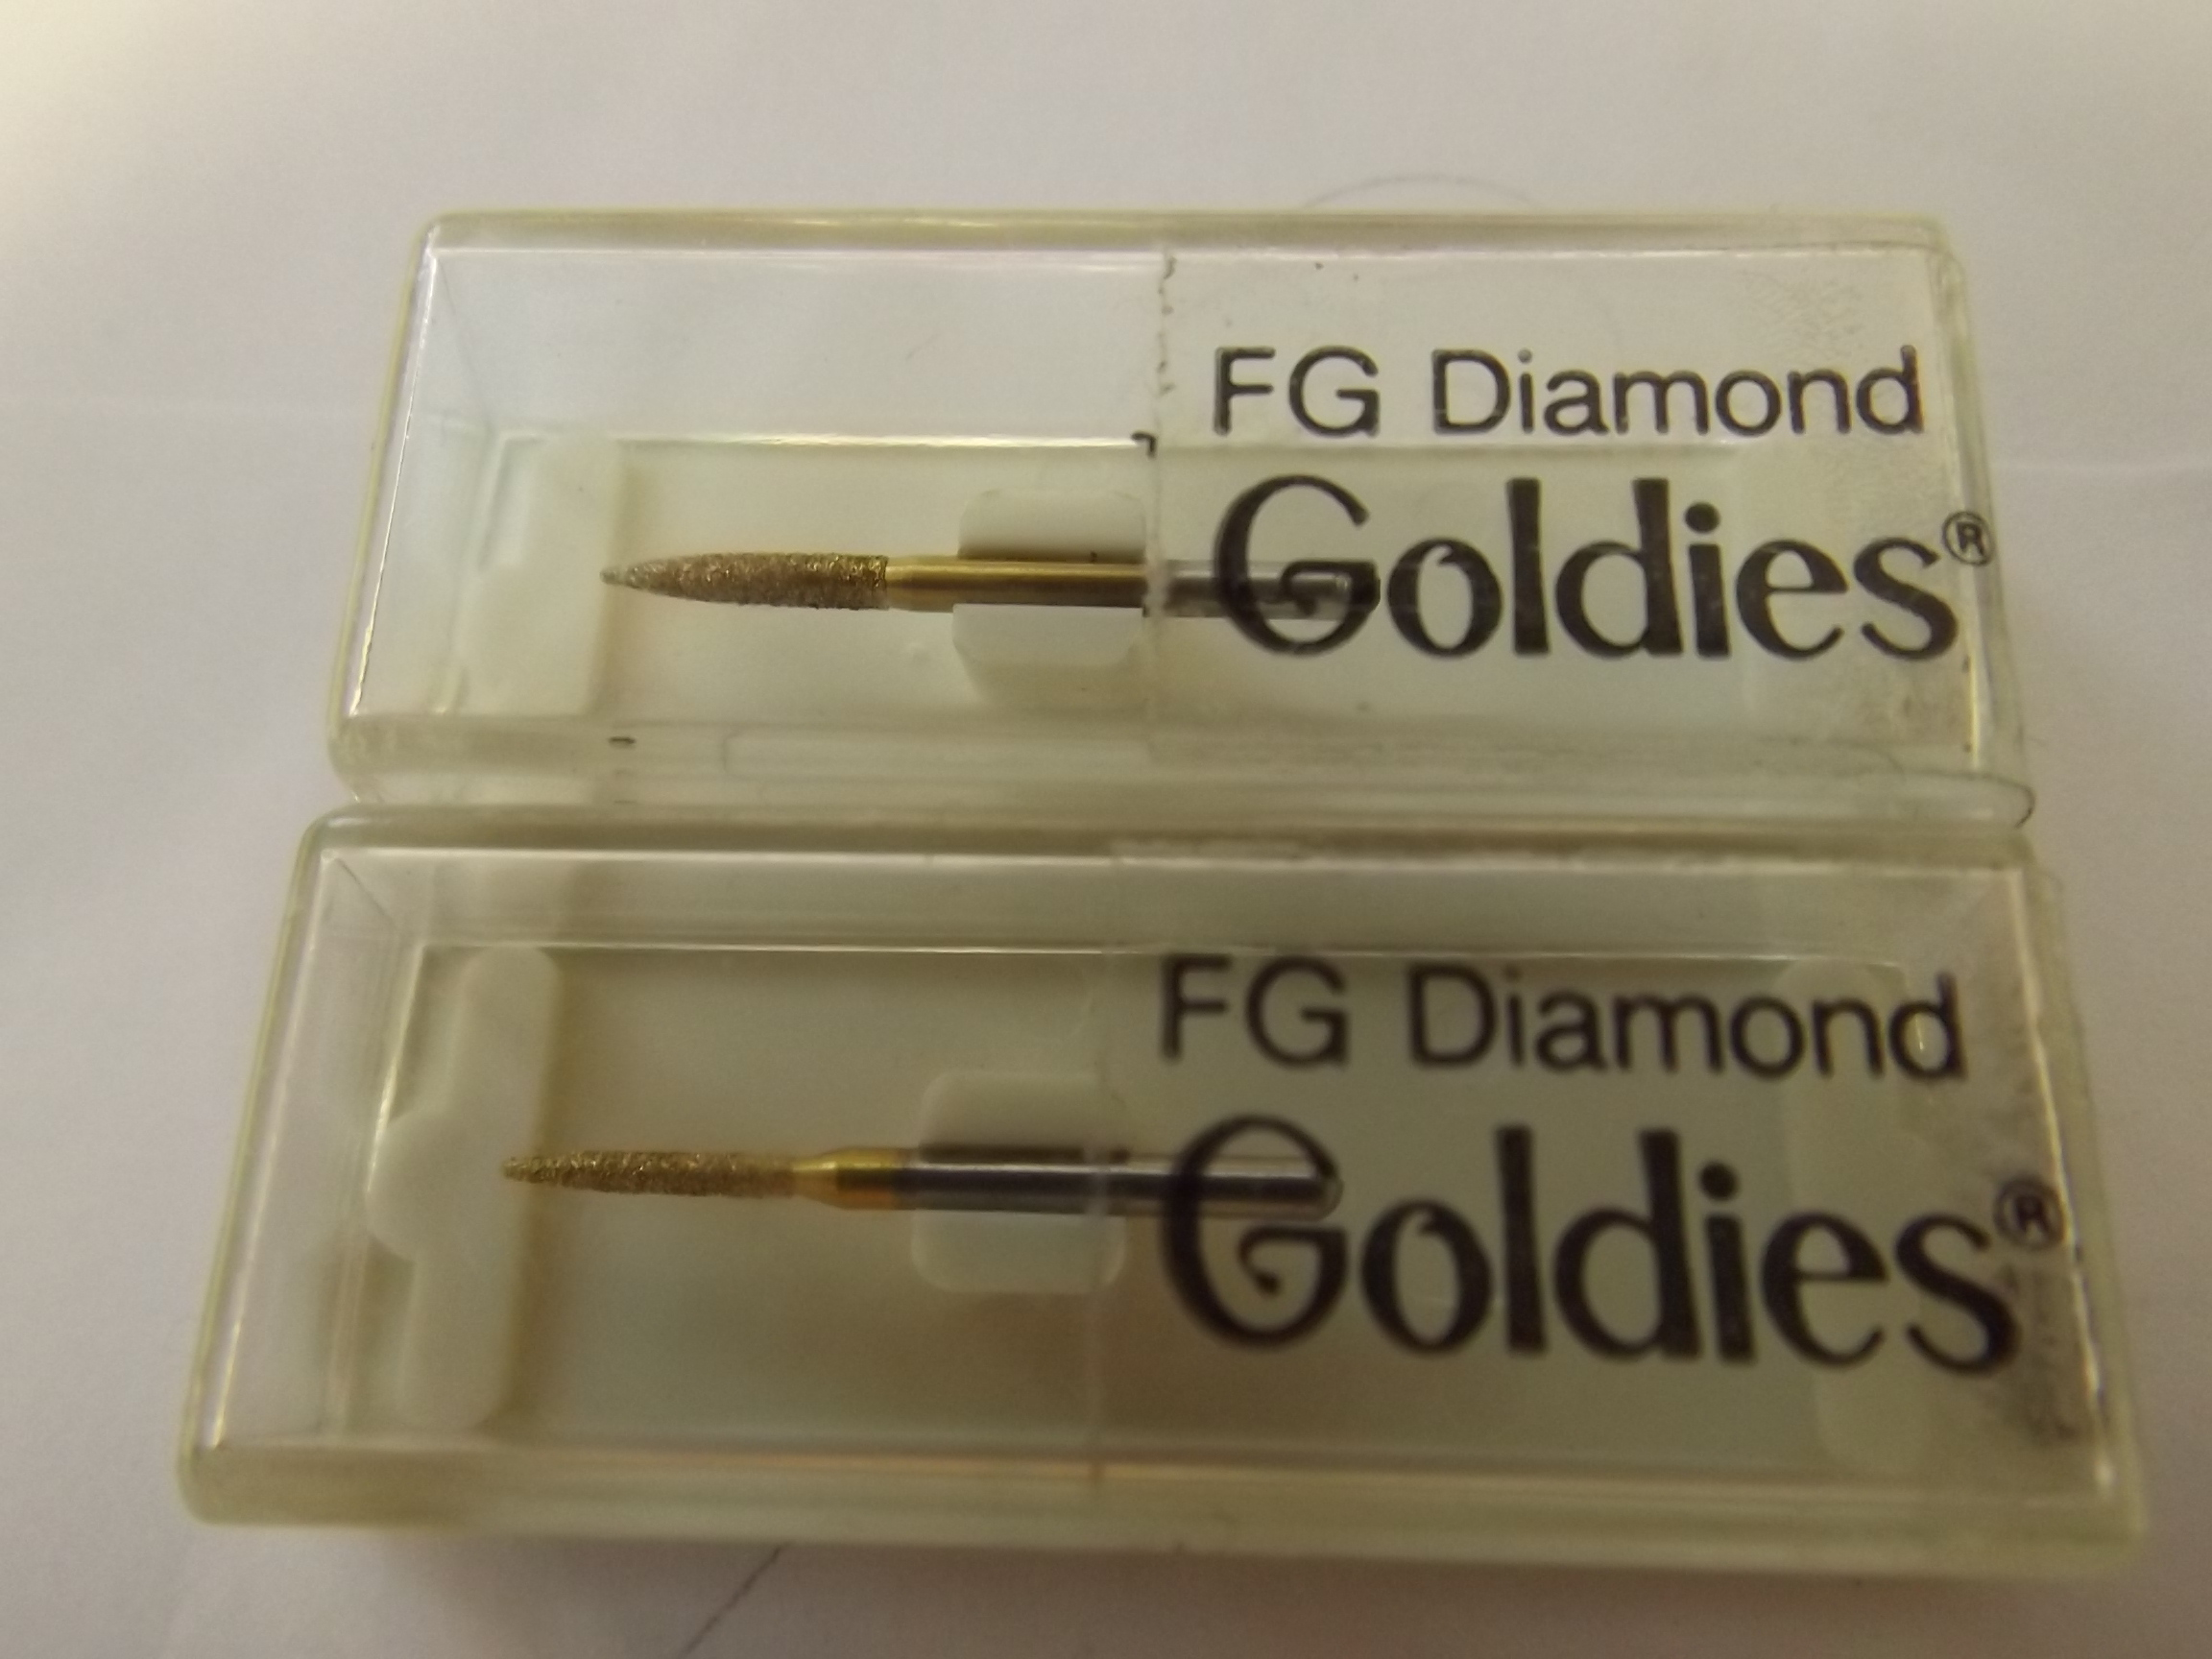 BR2057 Dedeco Diamond Goldies--Cylinder-Pointed End- FG Shank- ONE Only! Jewelry/Dental